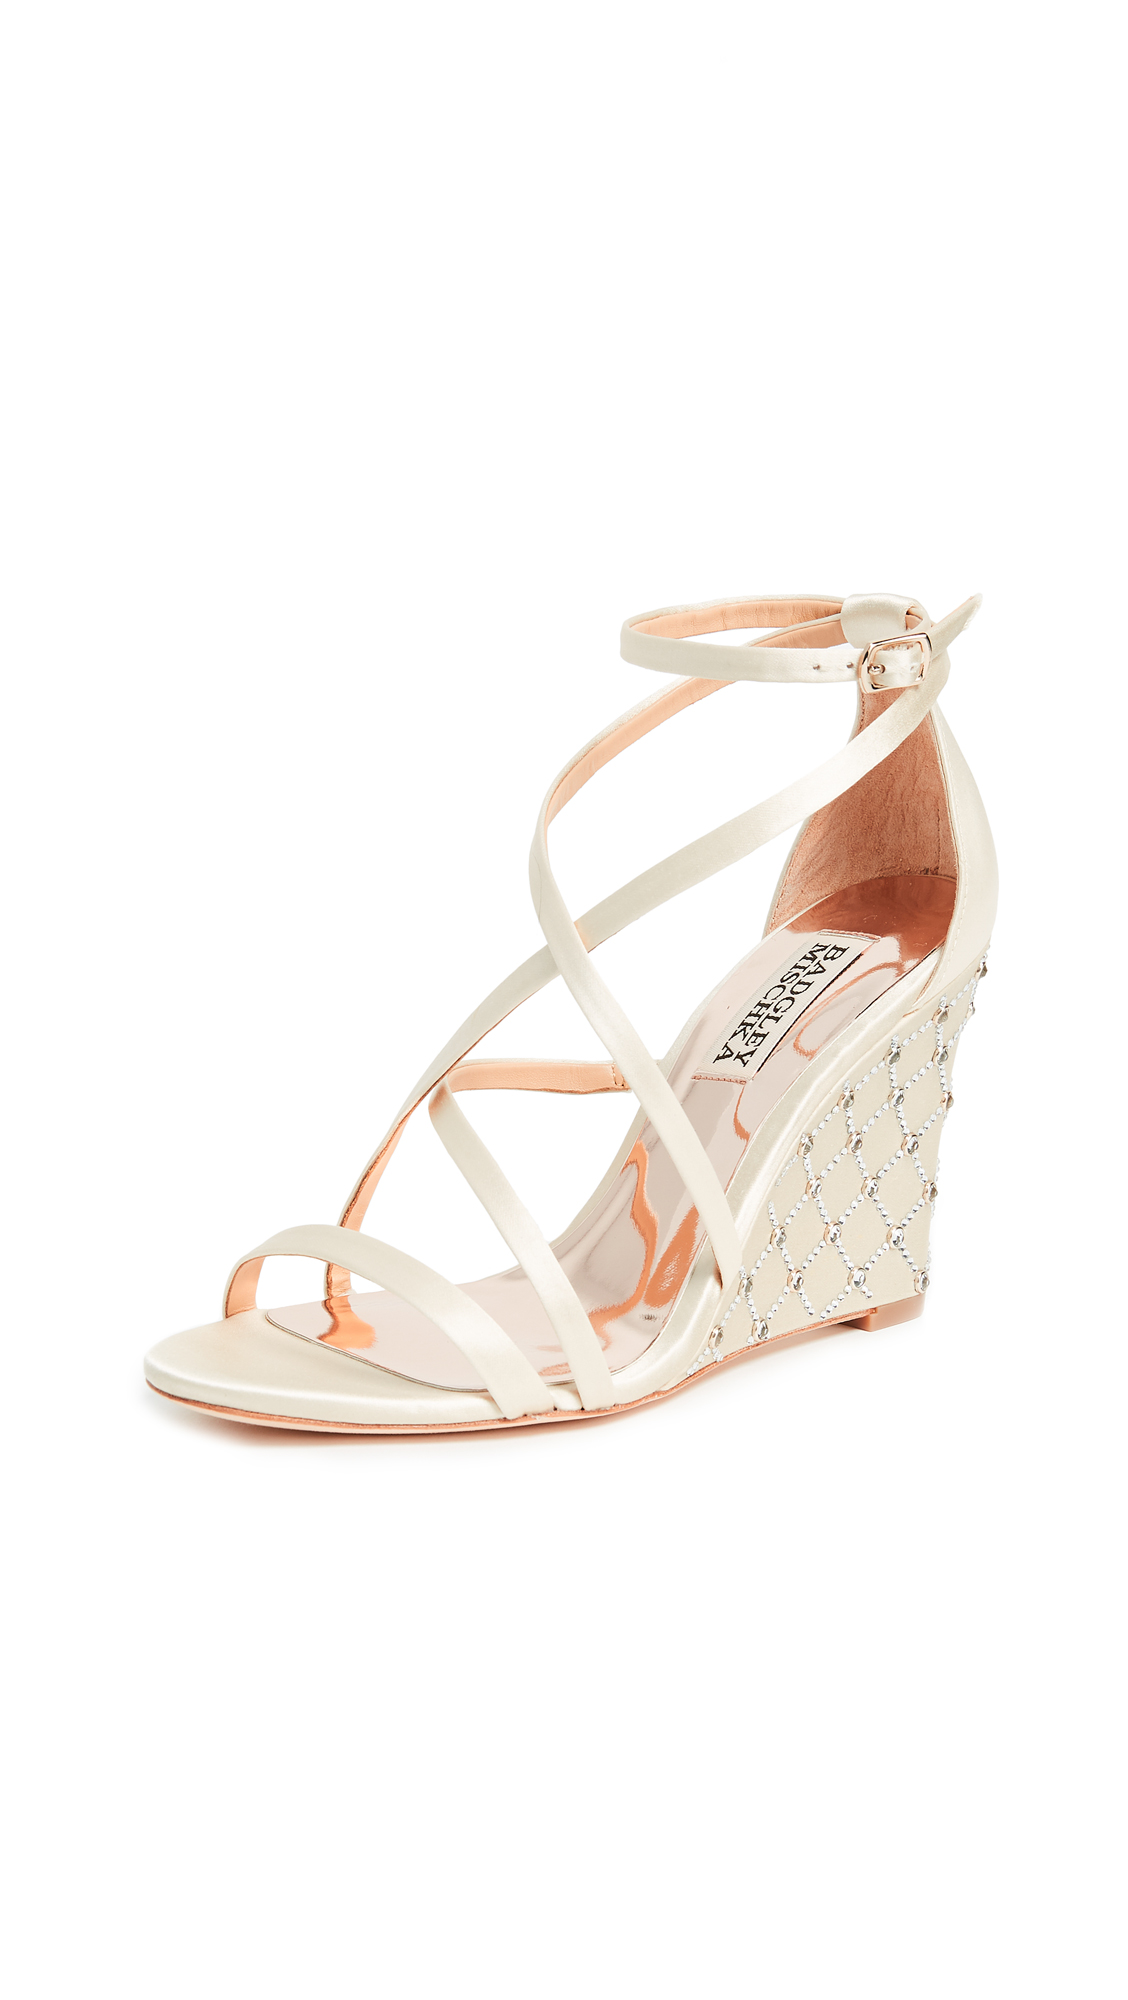 Badgley Mischka Shelly Wedge Sandals - Ivory